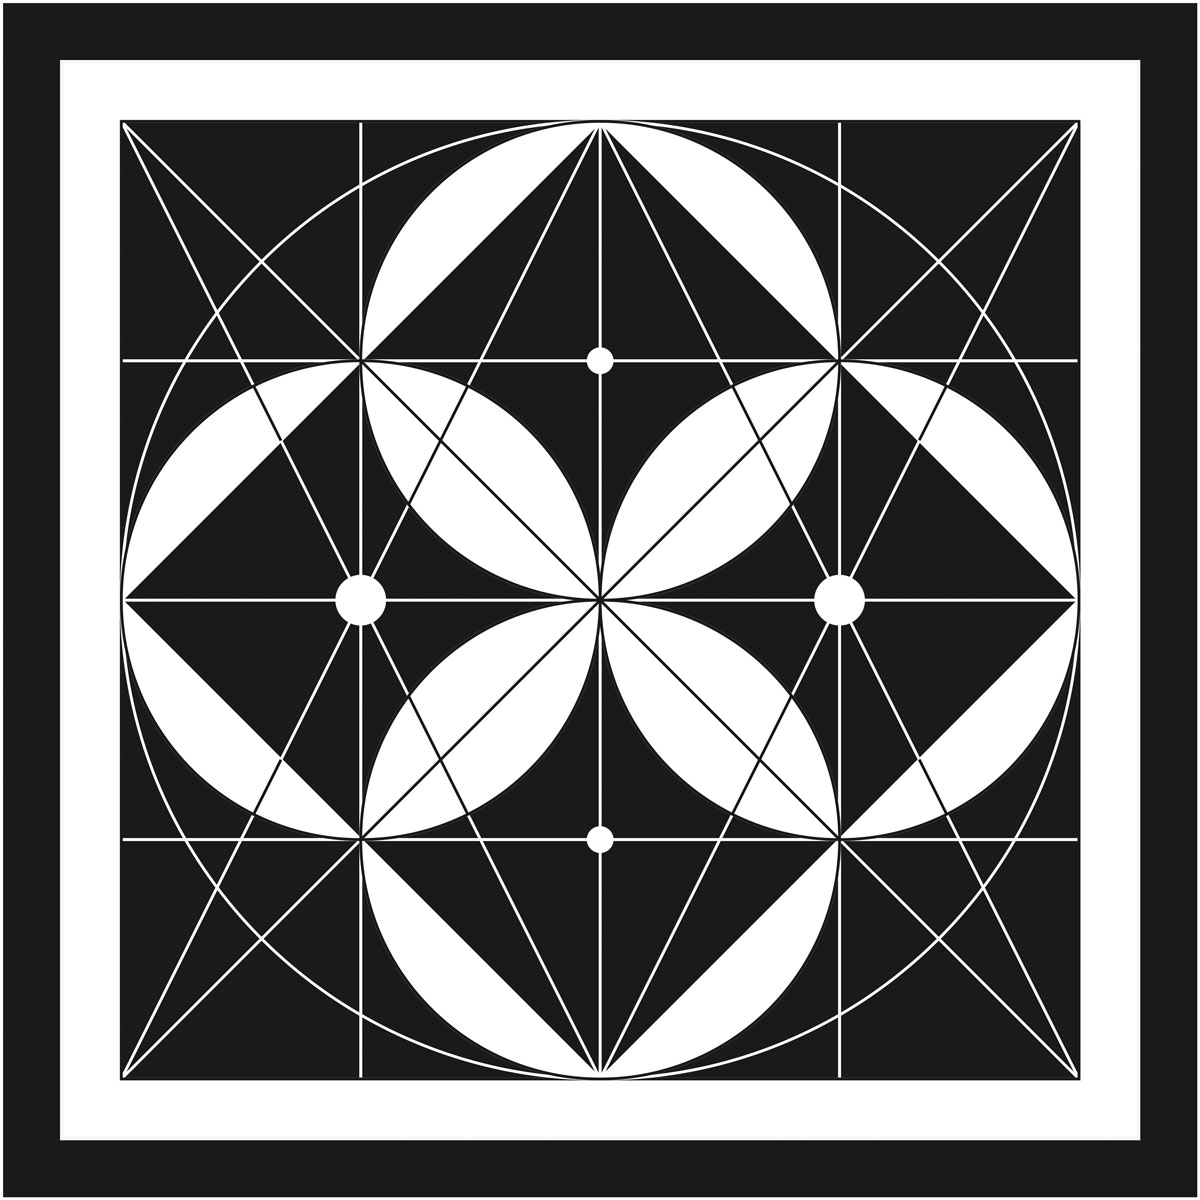 Black and white symbol of the Hermetic Diagram